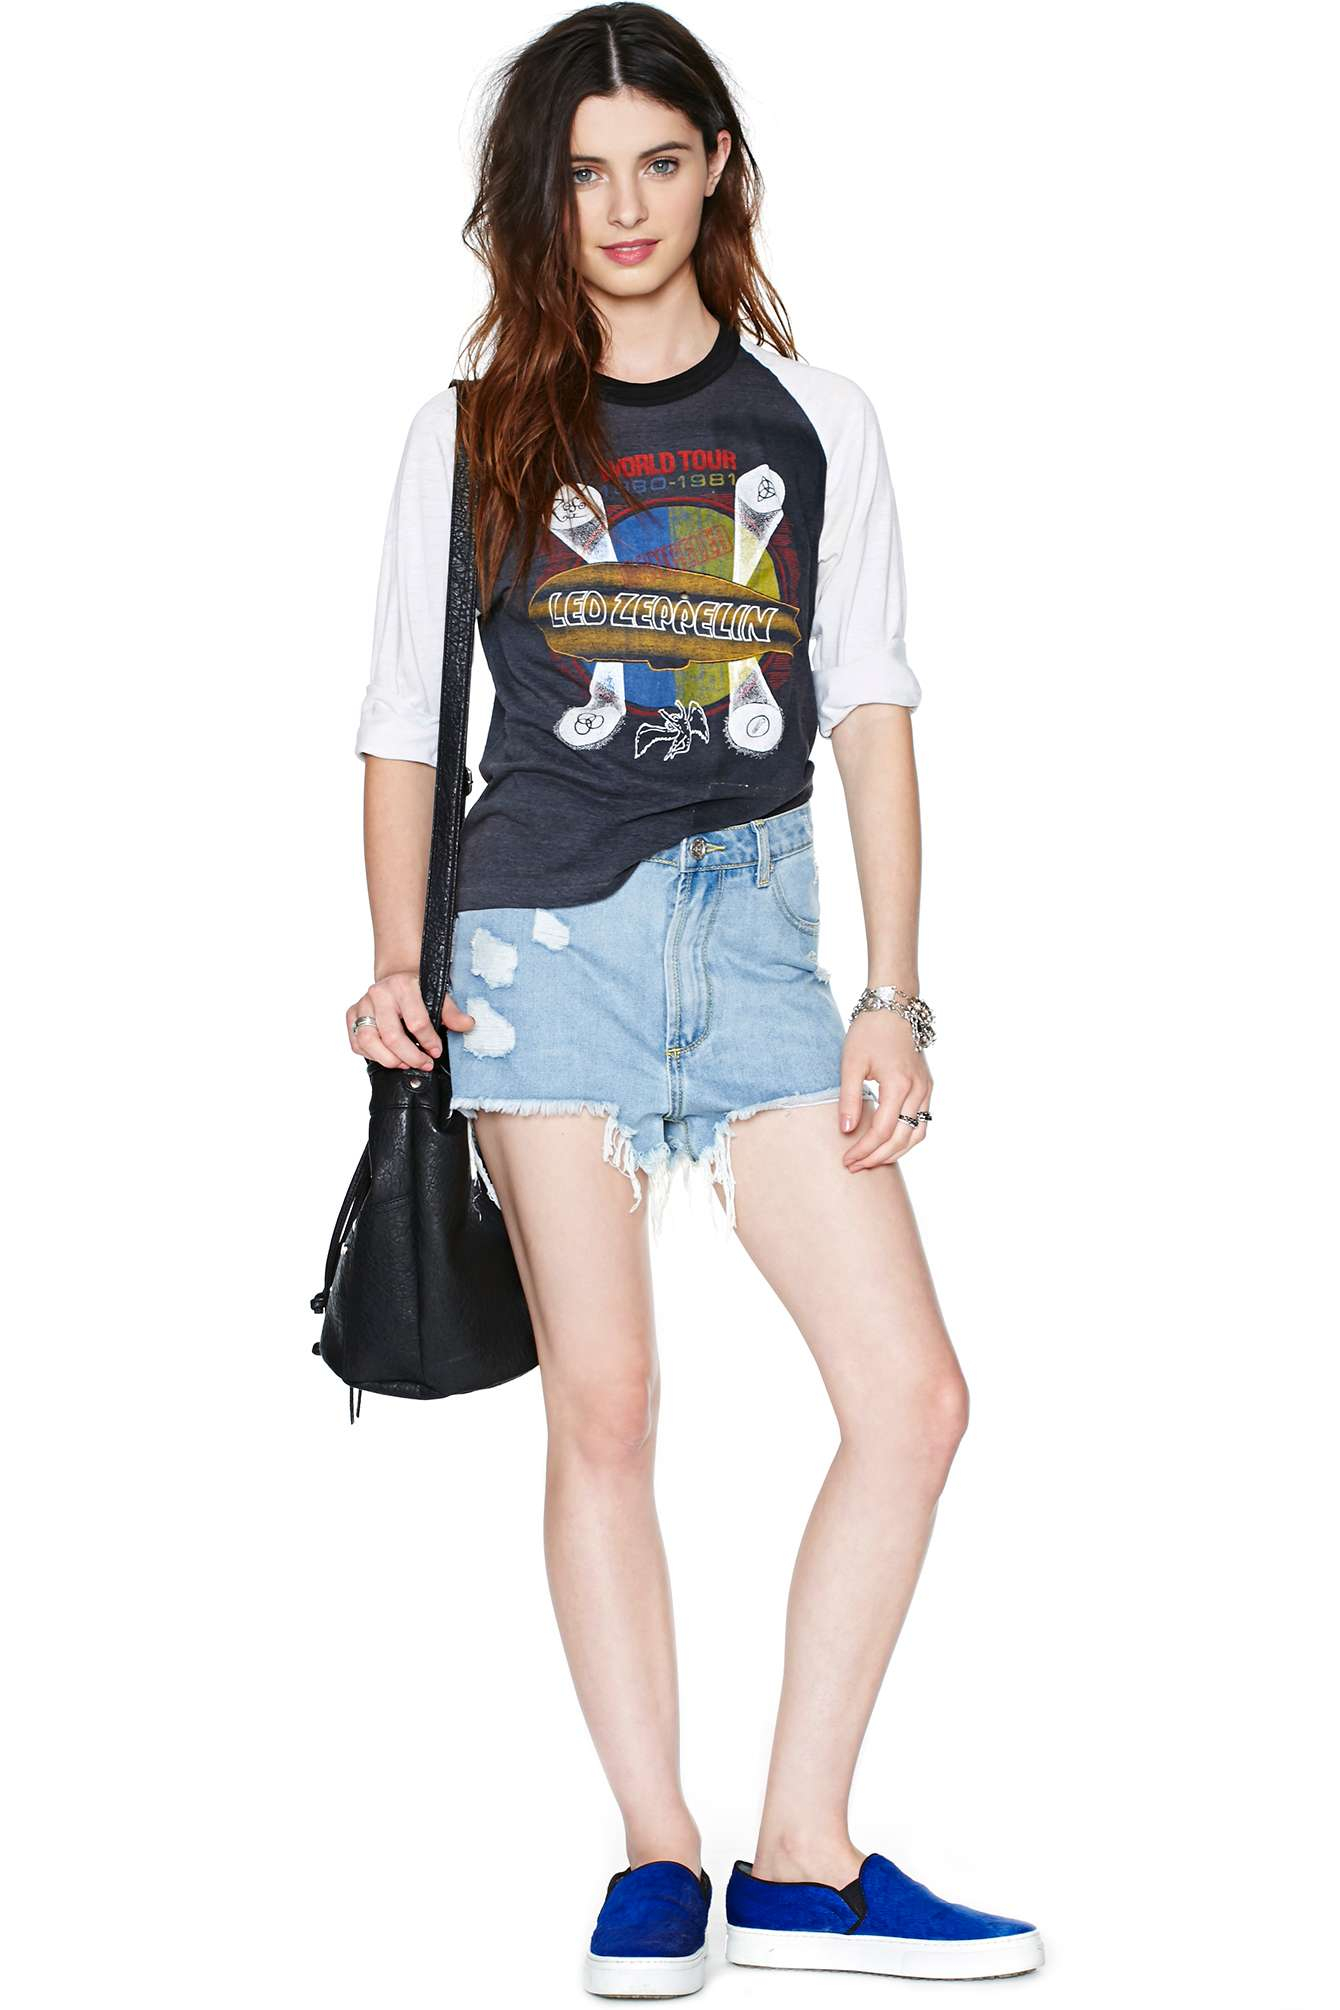 Nasty gal led zeppelin iv world tour tee in black lyst gallery biocorpaavc